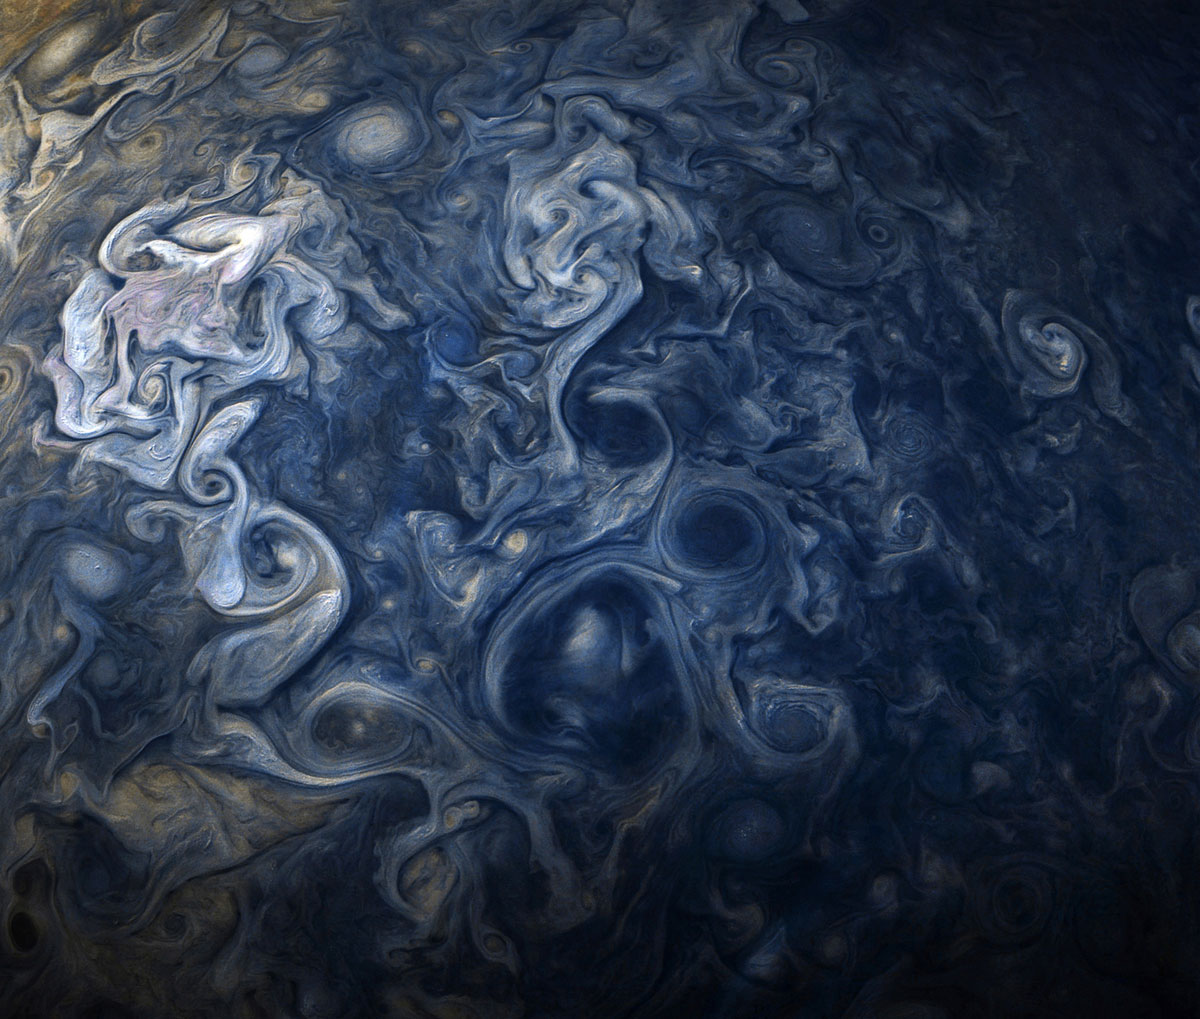 jupiter up close looks like a van gogh painting 10 Jupiter Up Close Looks Like a Van Gogh Painting (10 Photos)